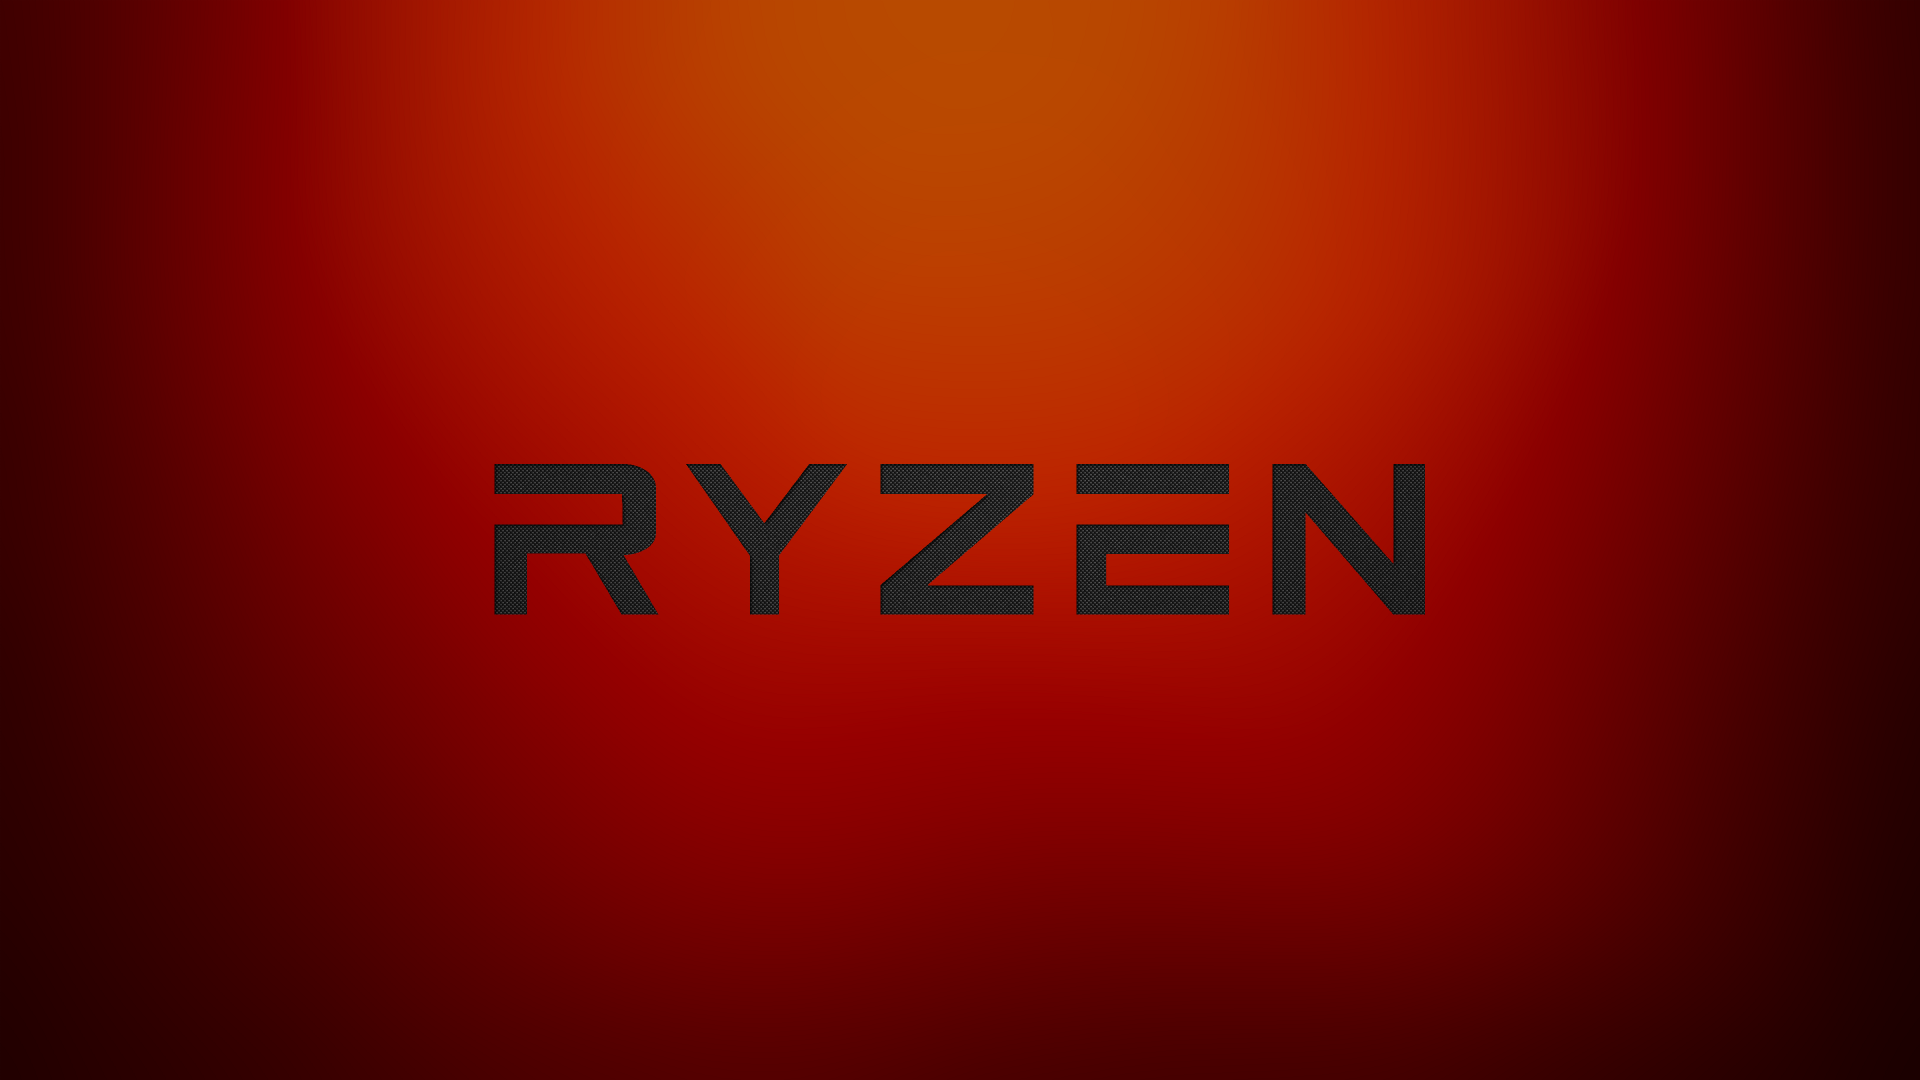 Amd Ryzen By Gamerenthusiast On Deviantart